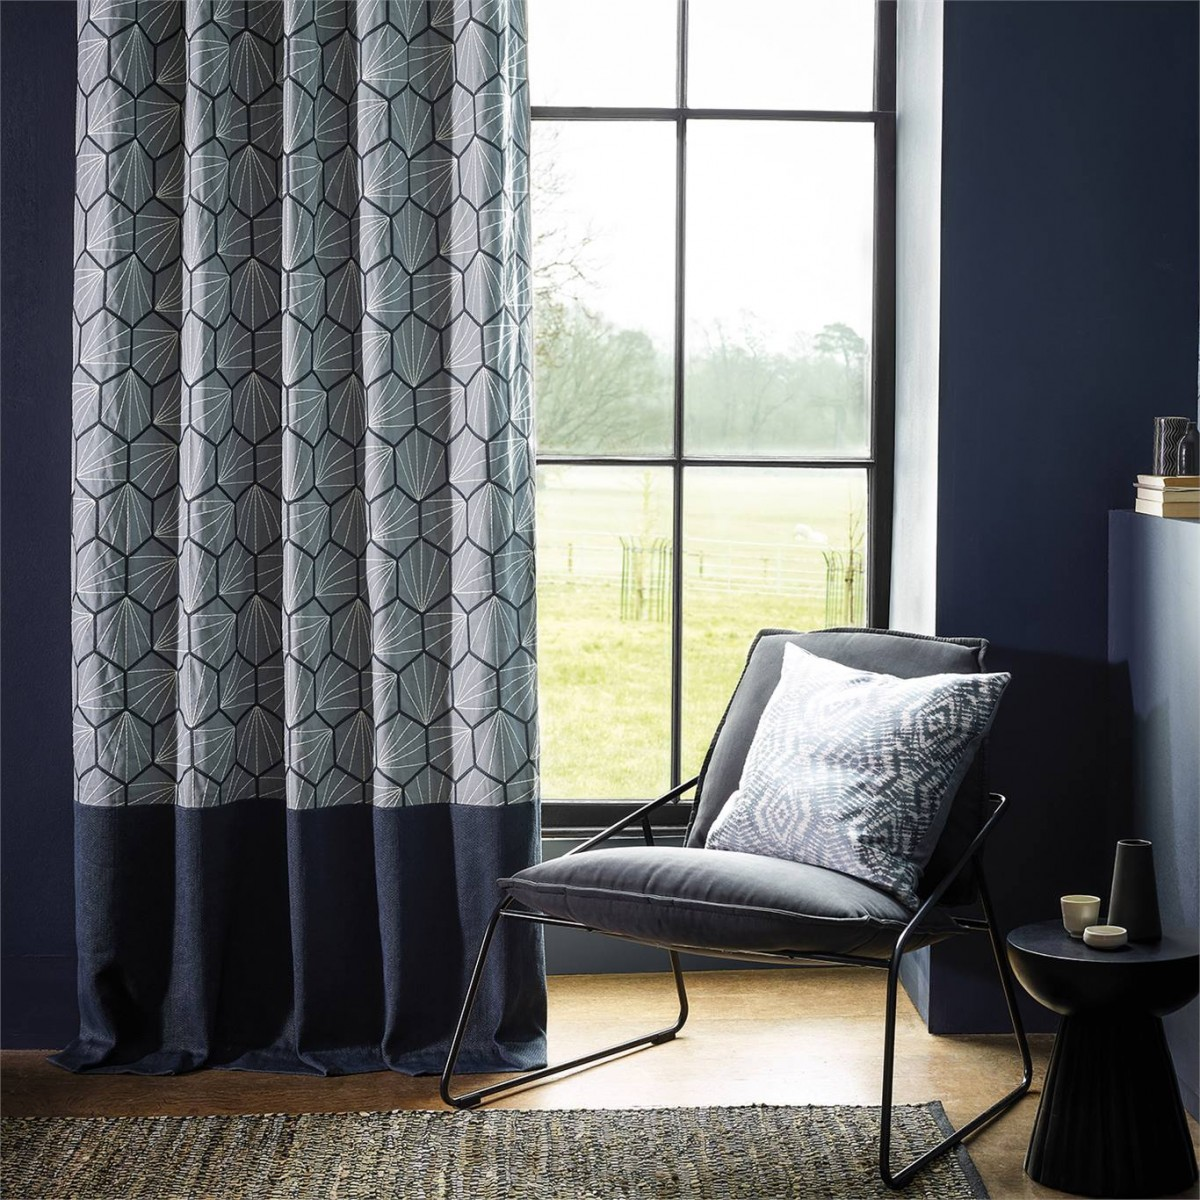 Curtains in Scion Aikyo fabric with contrast border